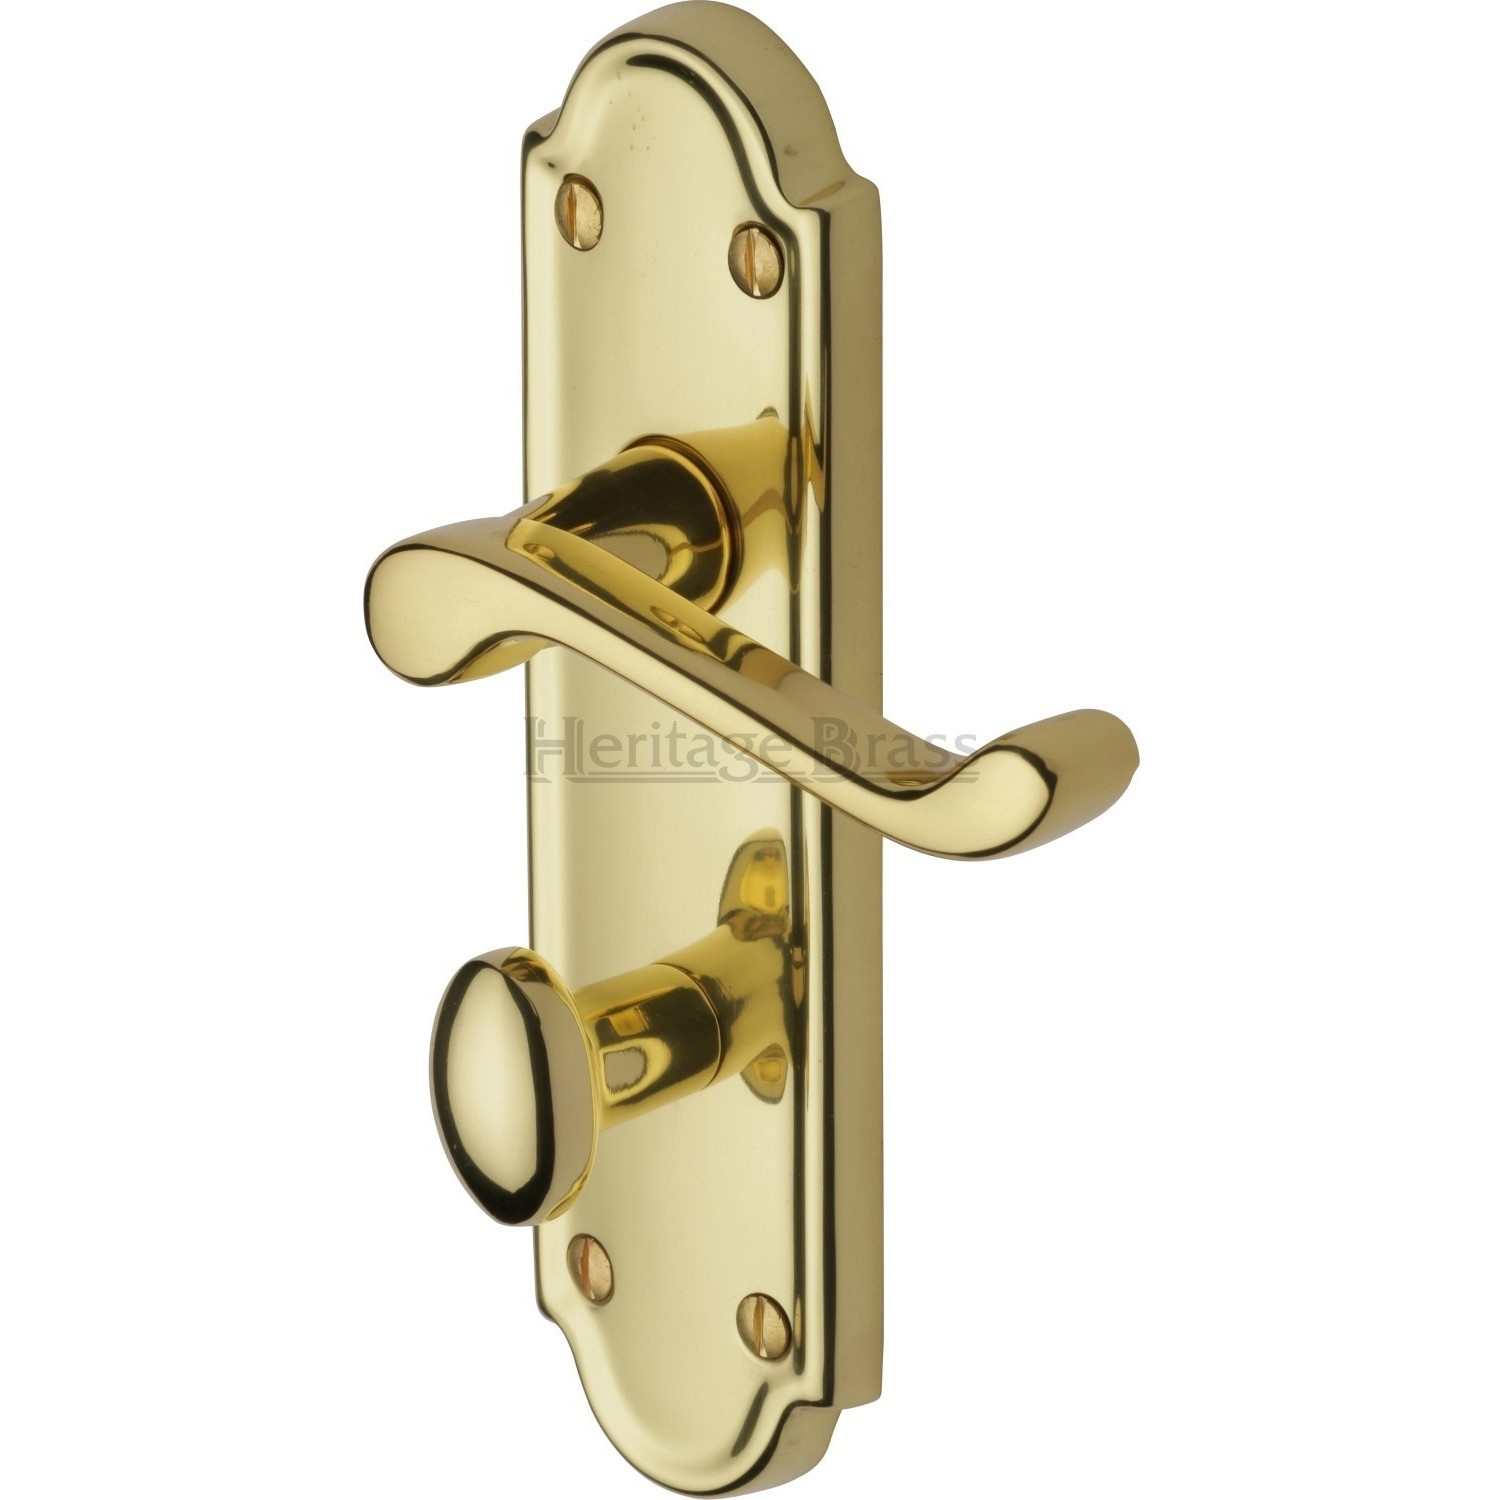 Brass Bathroom Door Handle With Lockheritage brass meridian door handle on bathroom plate polished